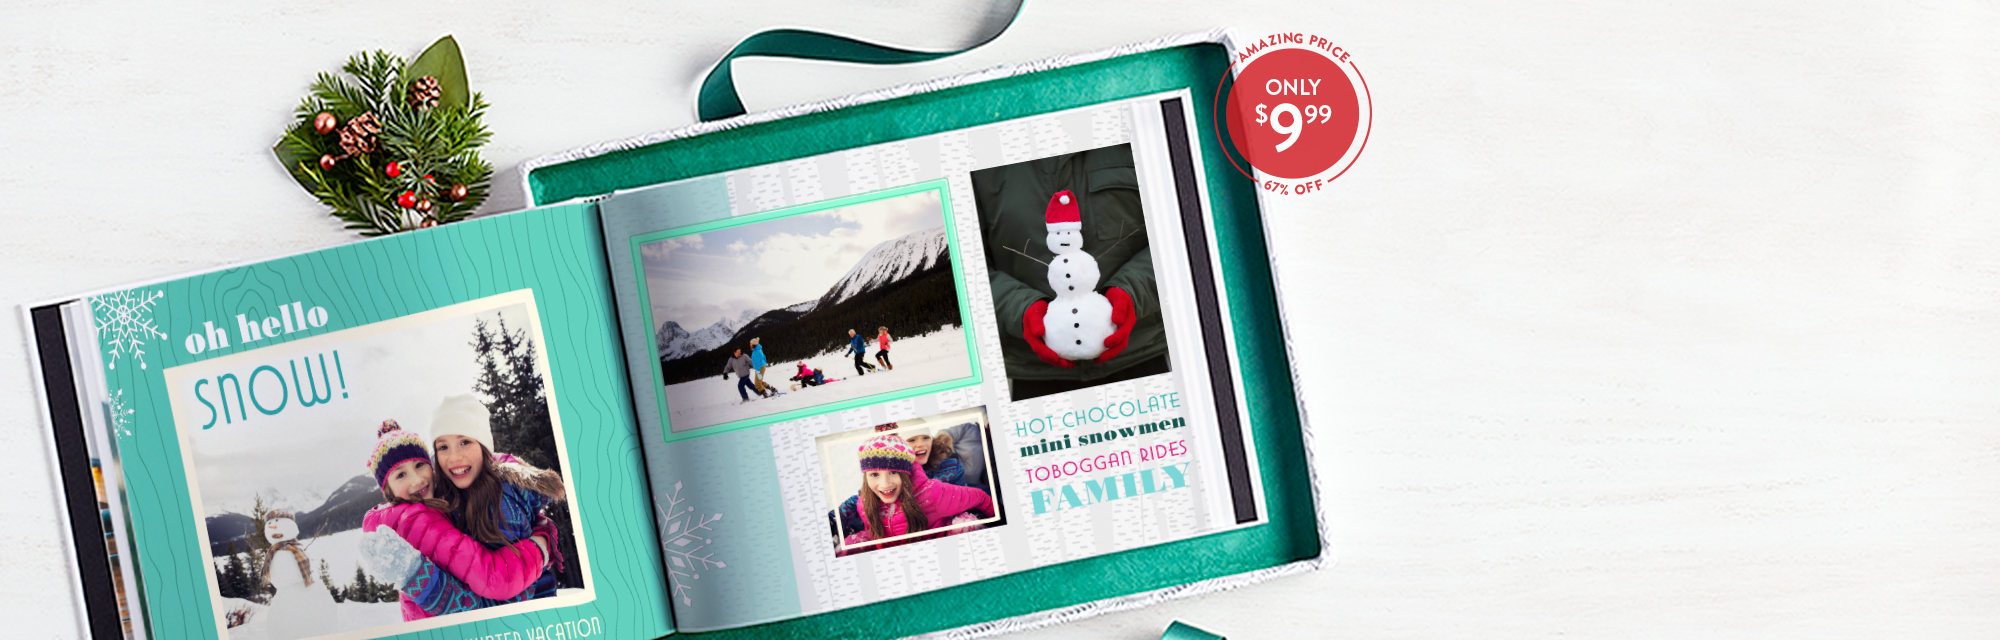 Save big on our best-selling book : Our 8x11 Hardcover Book is now 67% off! Use code 999BOOK for a limited time*